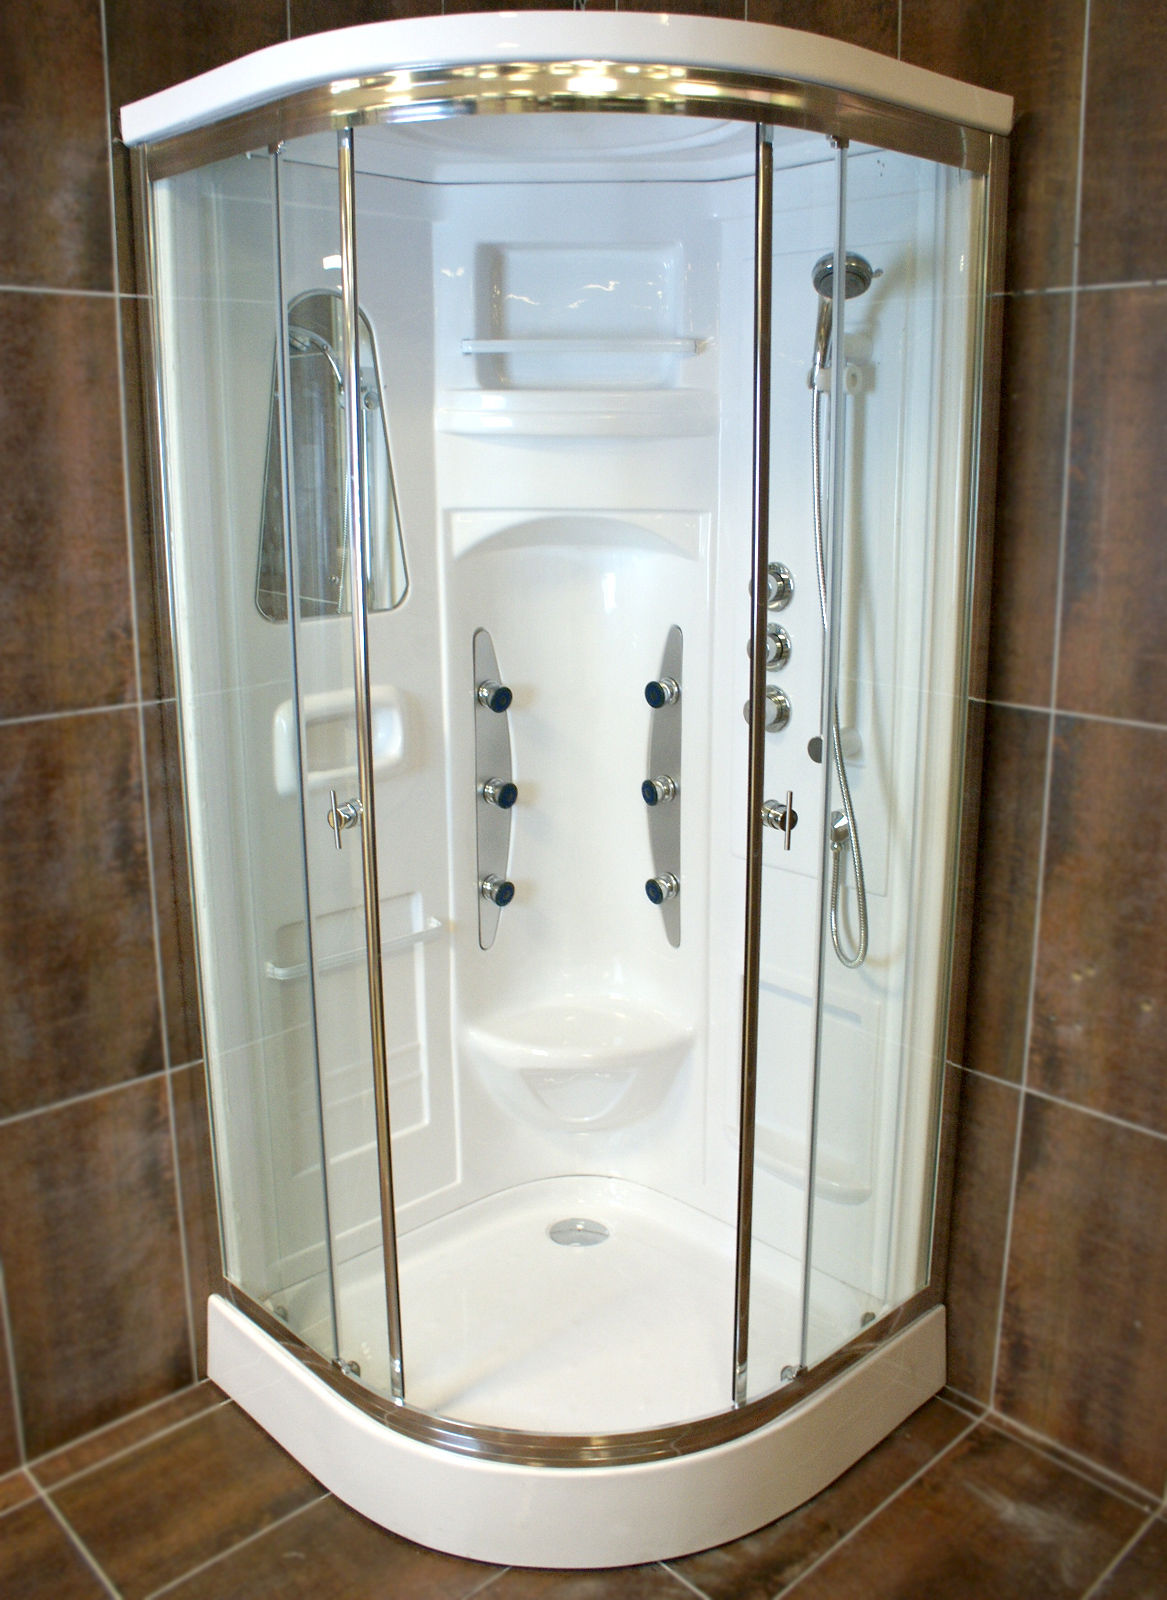 Crystal Luxury Hydromassage Non-Steam Shower Cabin Cubicle Enclosure ...